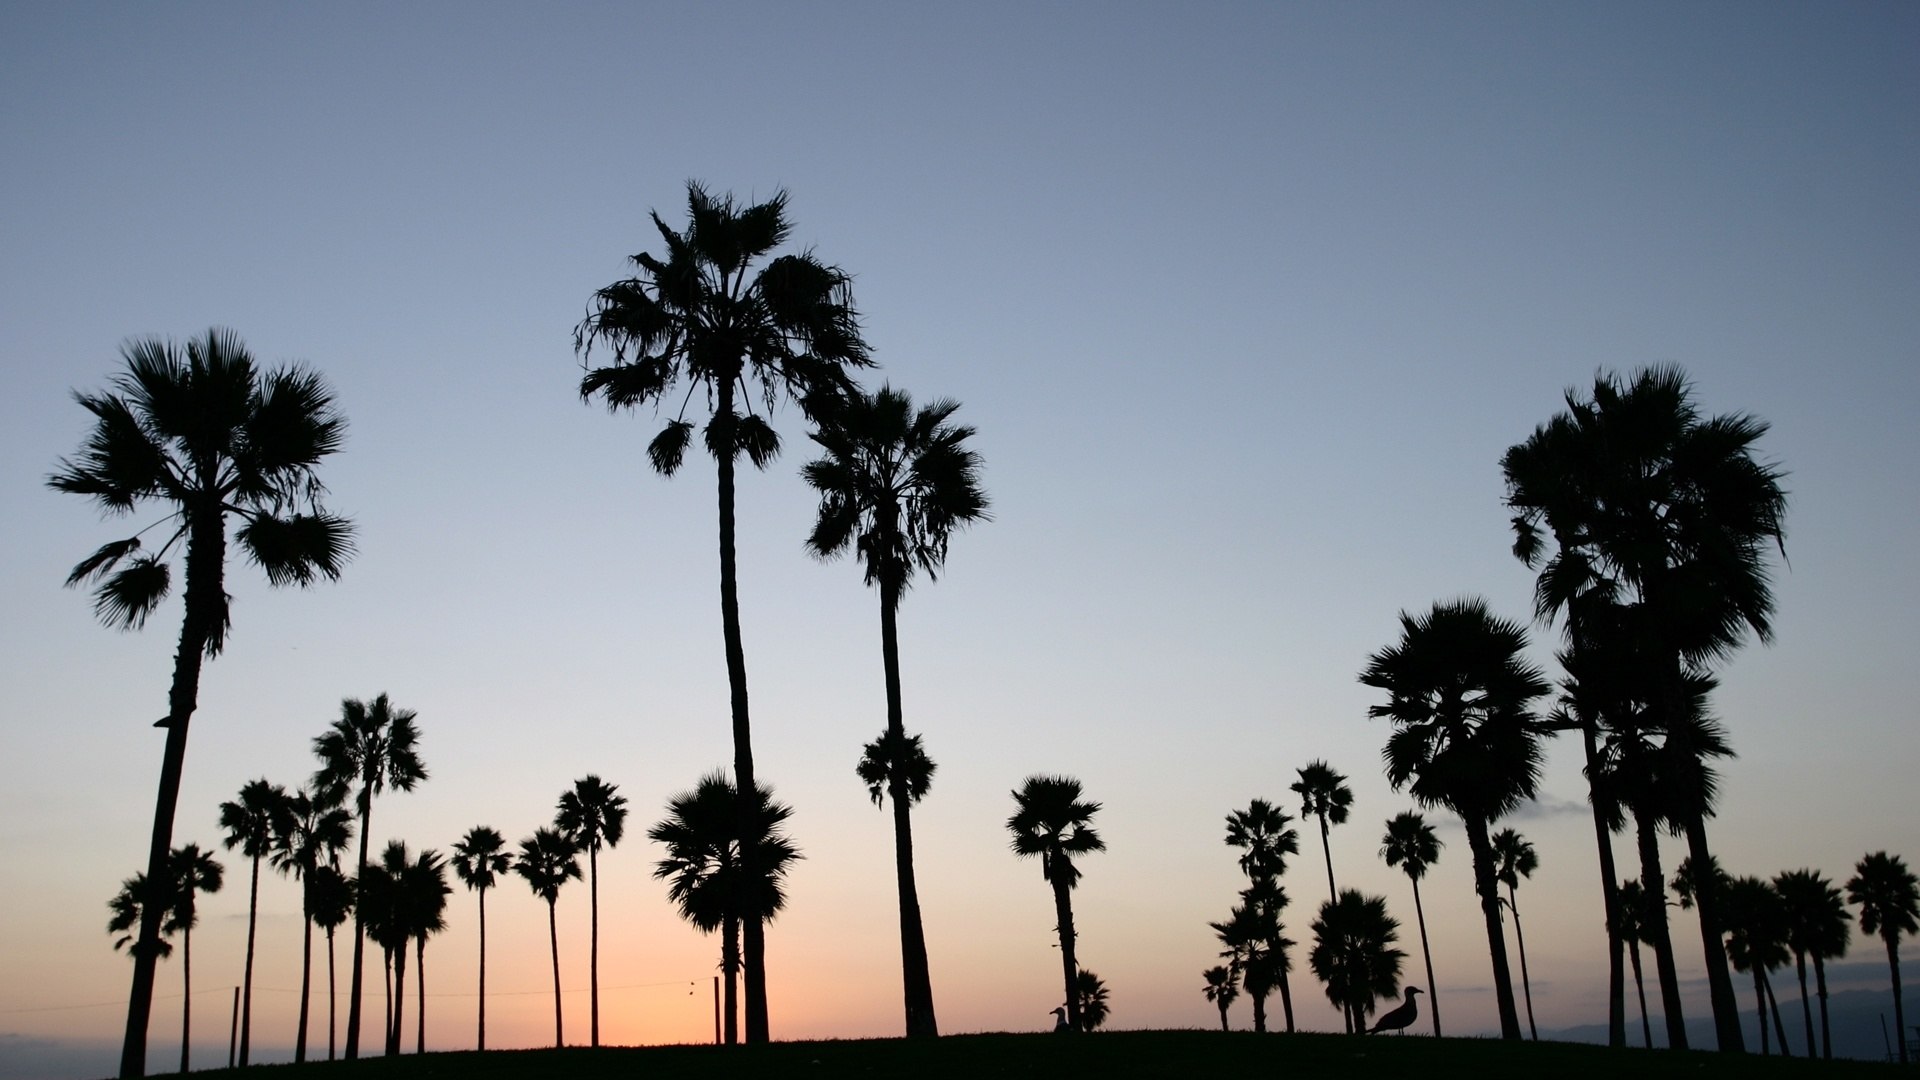 91] Venice Beach Wallpapers on WallpaperSafari 1920x1080